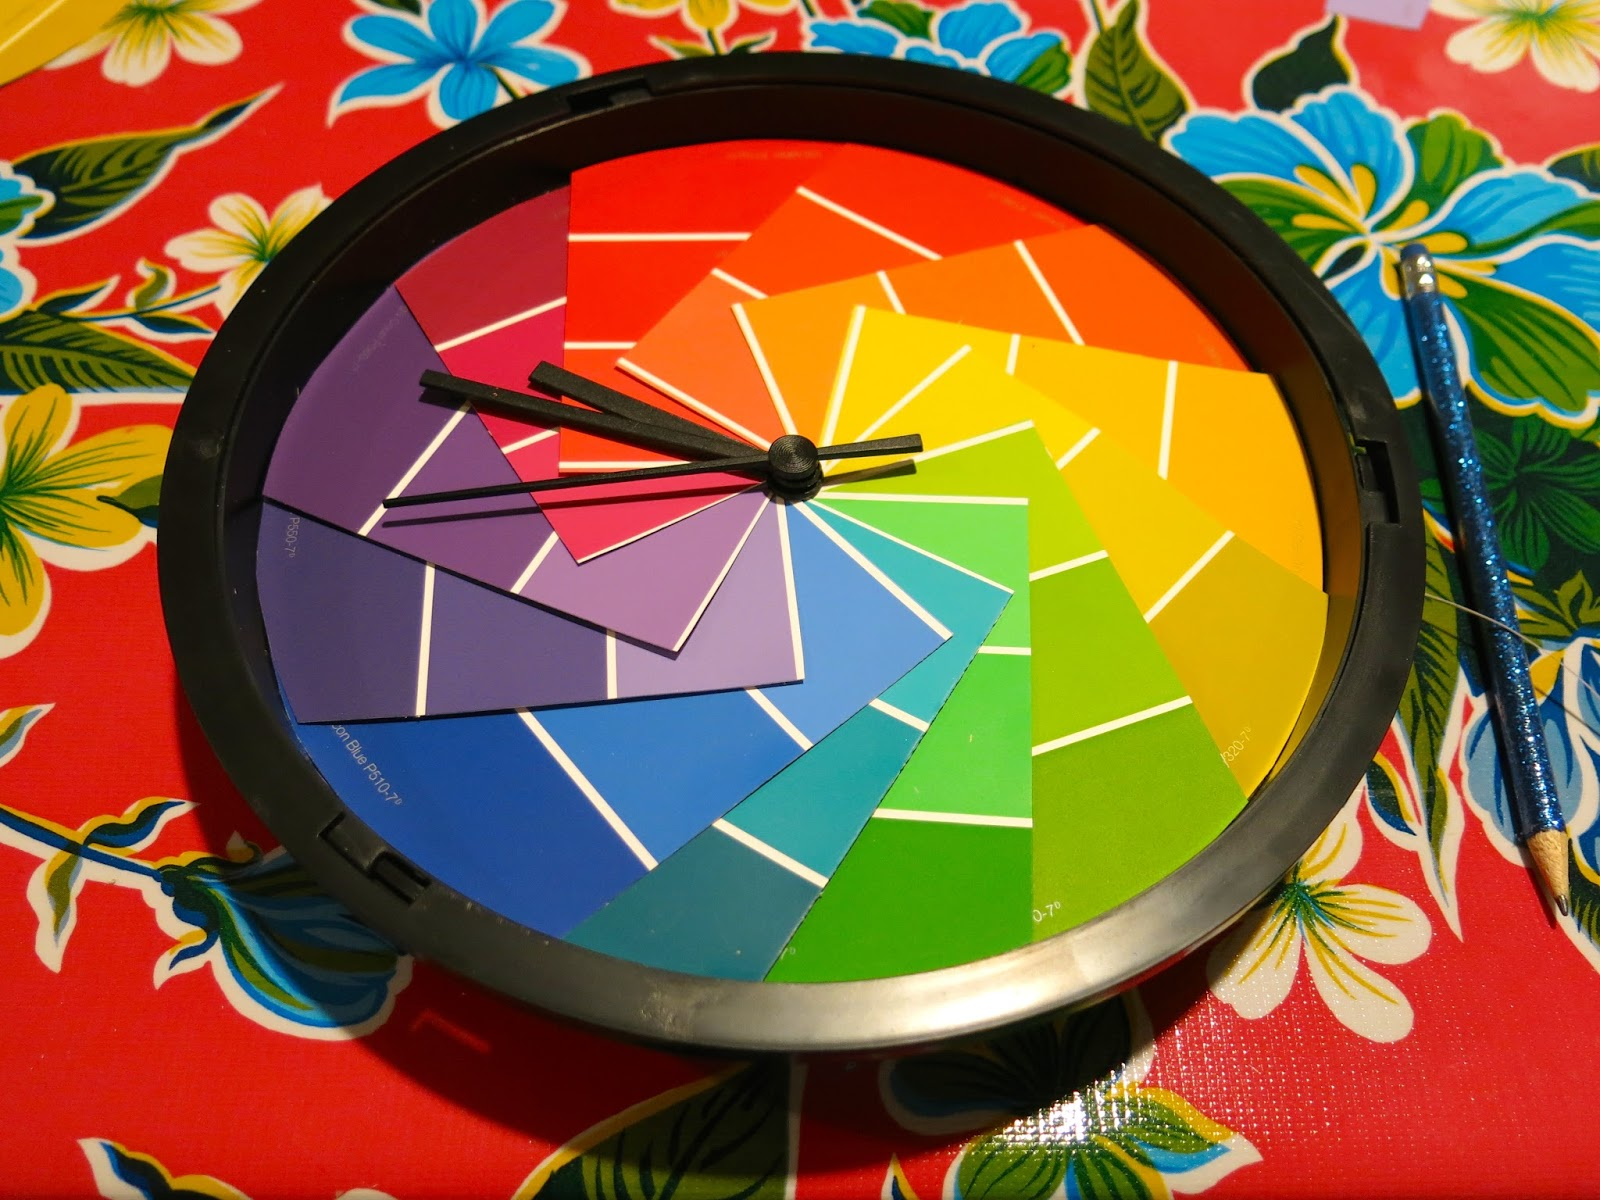 Color wheel art projects for kids - Diy A Color Wheel Clock